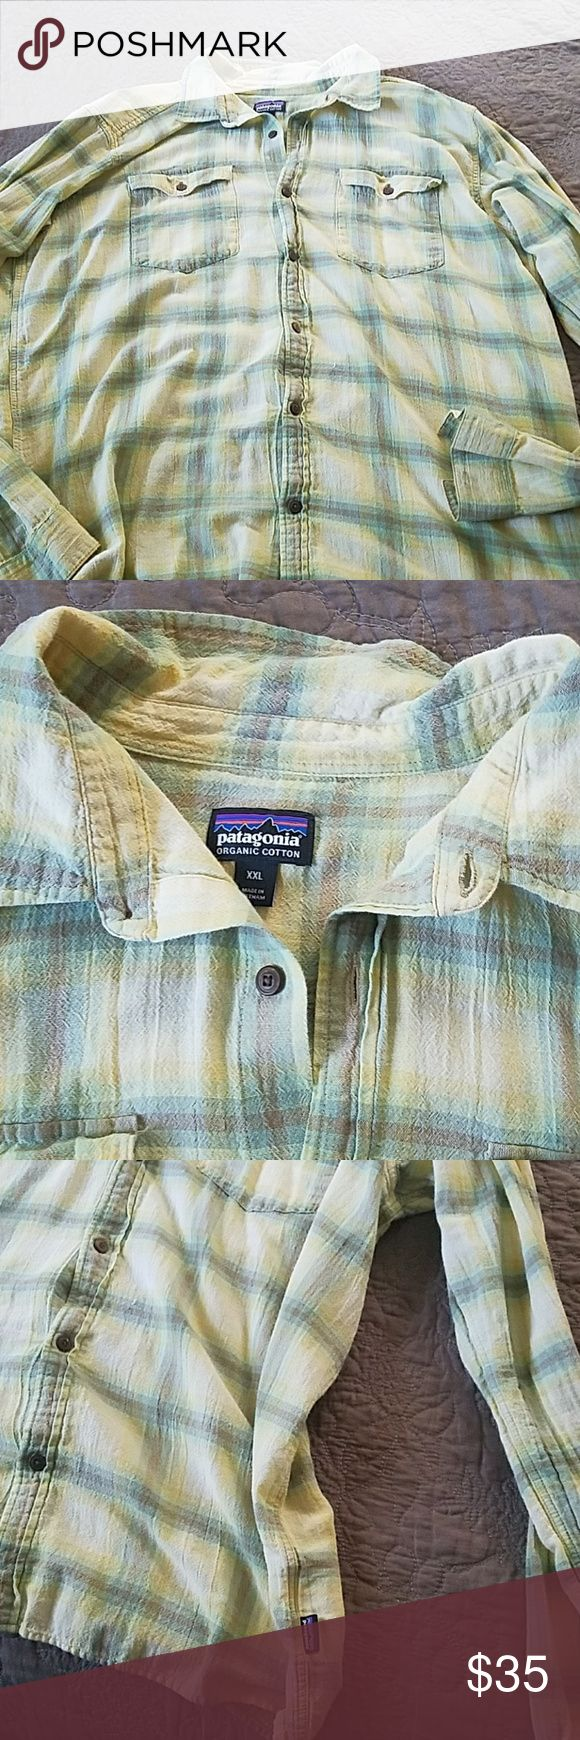 🌲Patagonia Button Down Shirt New🌲 New Patagonia shirt. Shirt is very similar to the A/C shirt in long sleeves Patagonia Shirts Casual Button Down Shirts